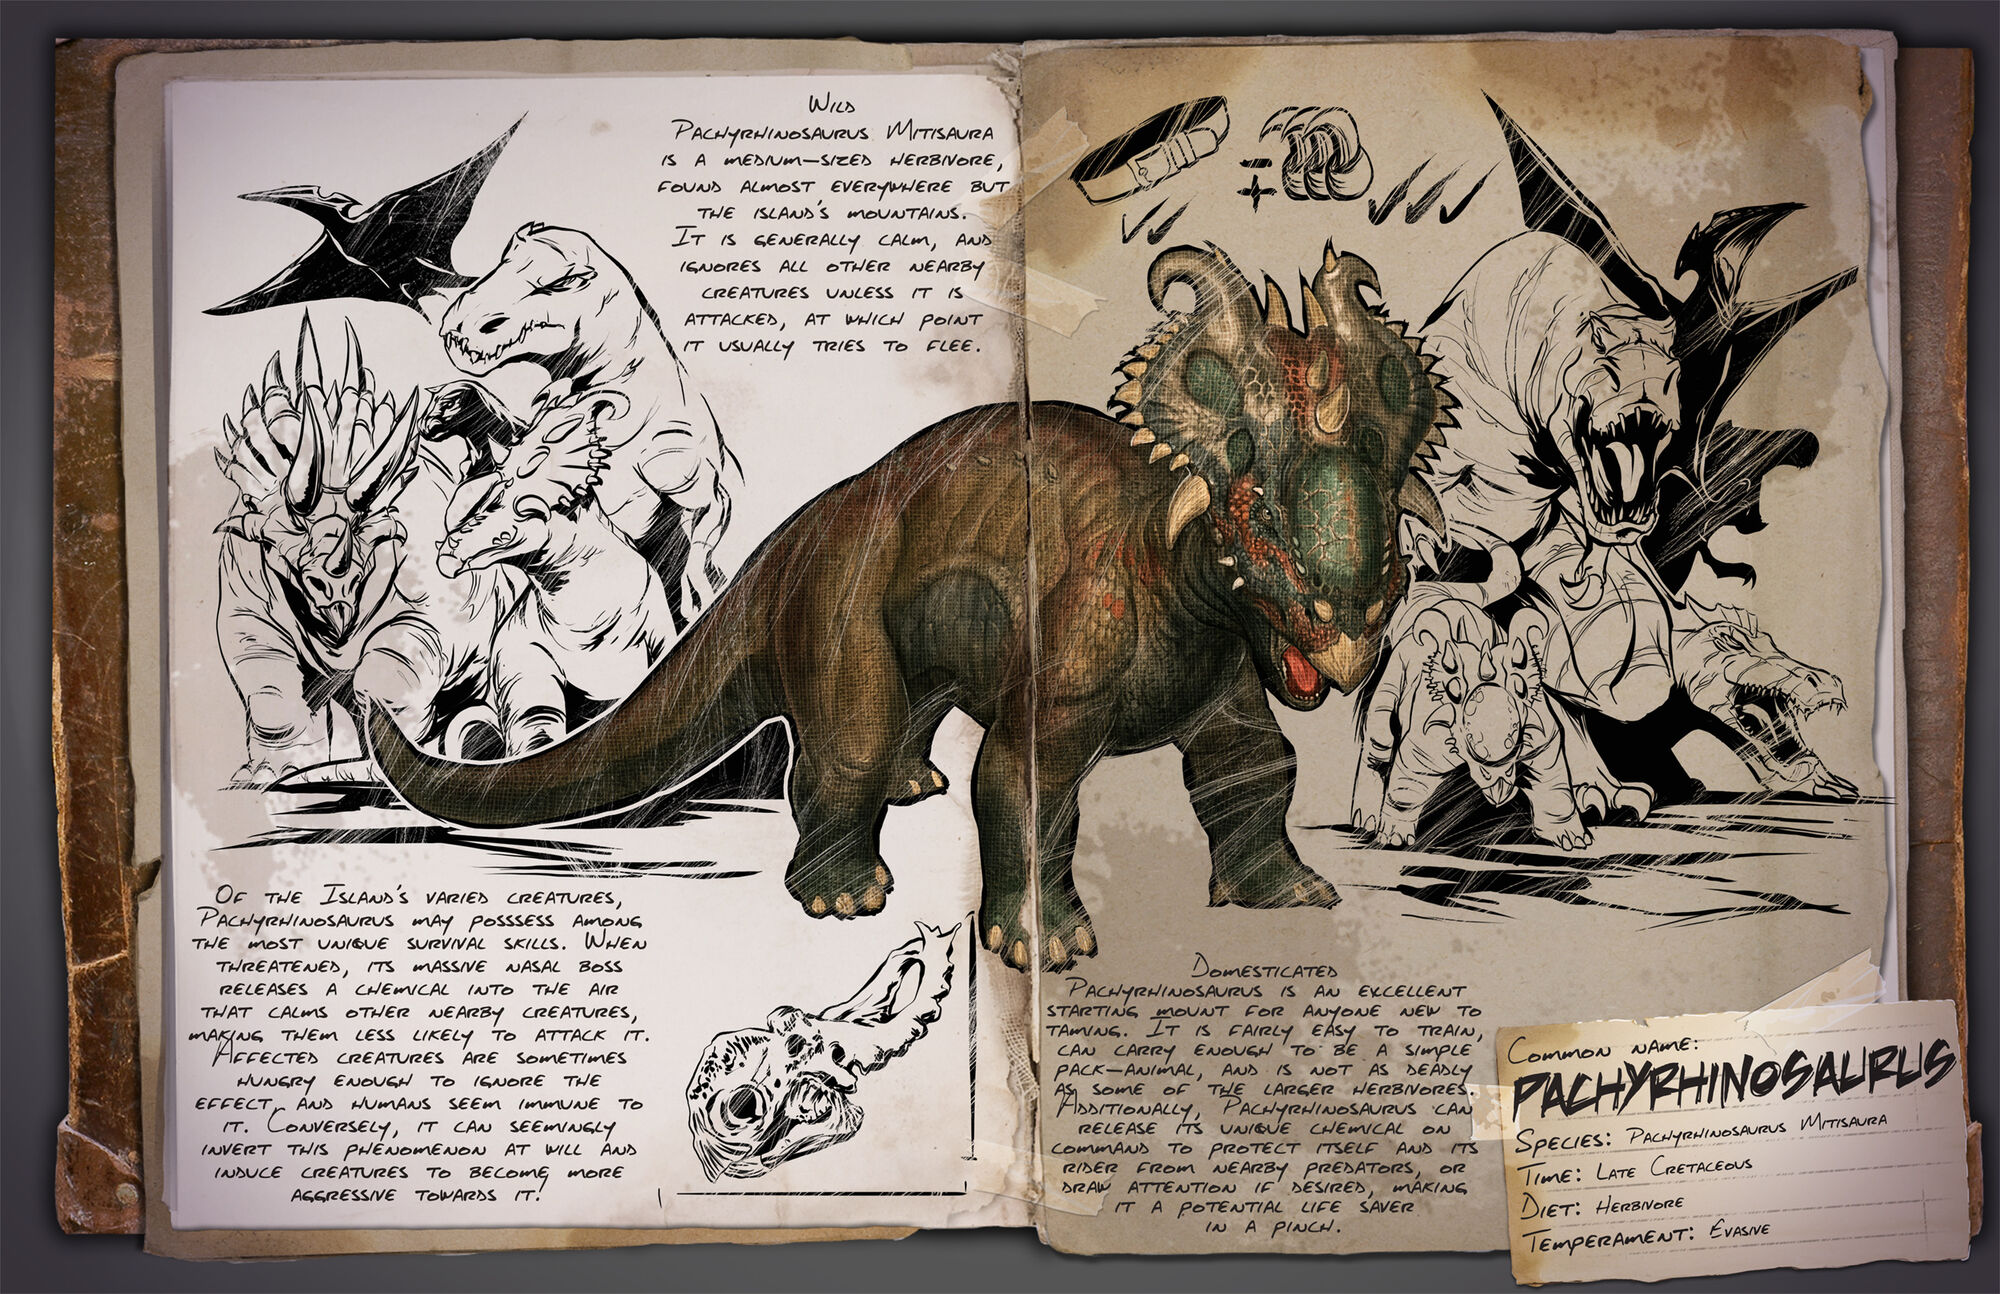 Pachyrhinosaurus Ark Survival Evolved Wiki Fandom Powered By Wikia